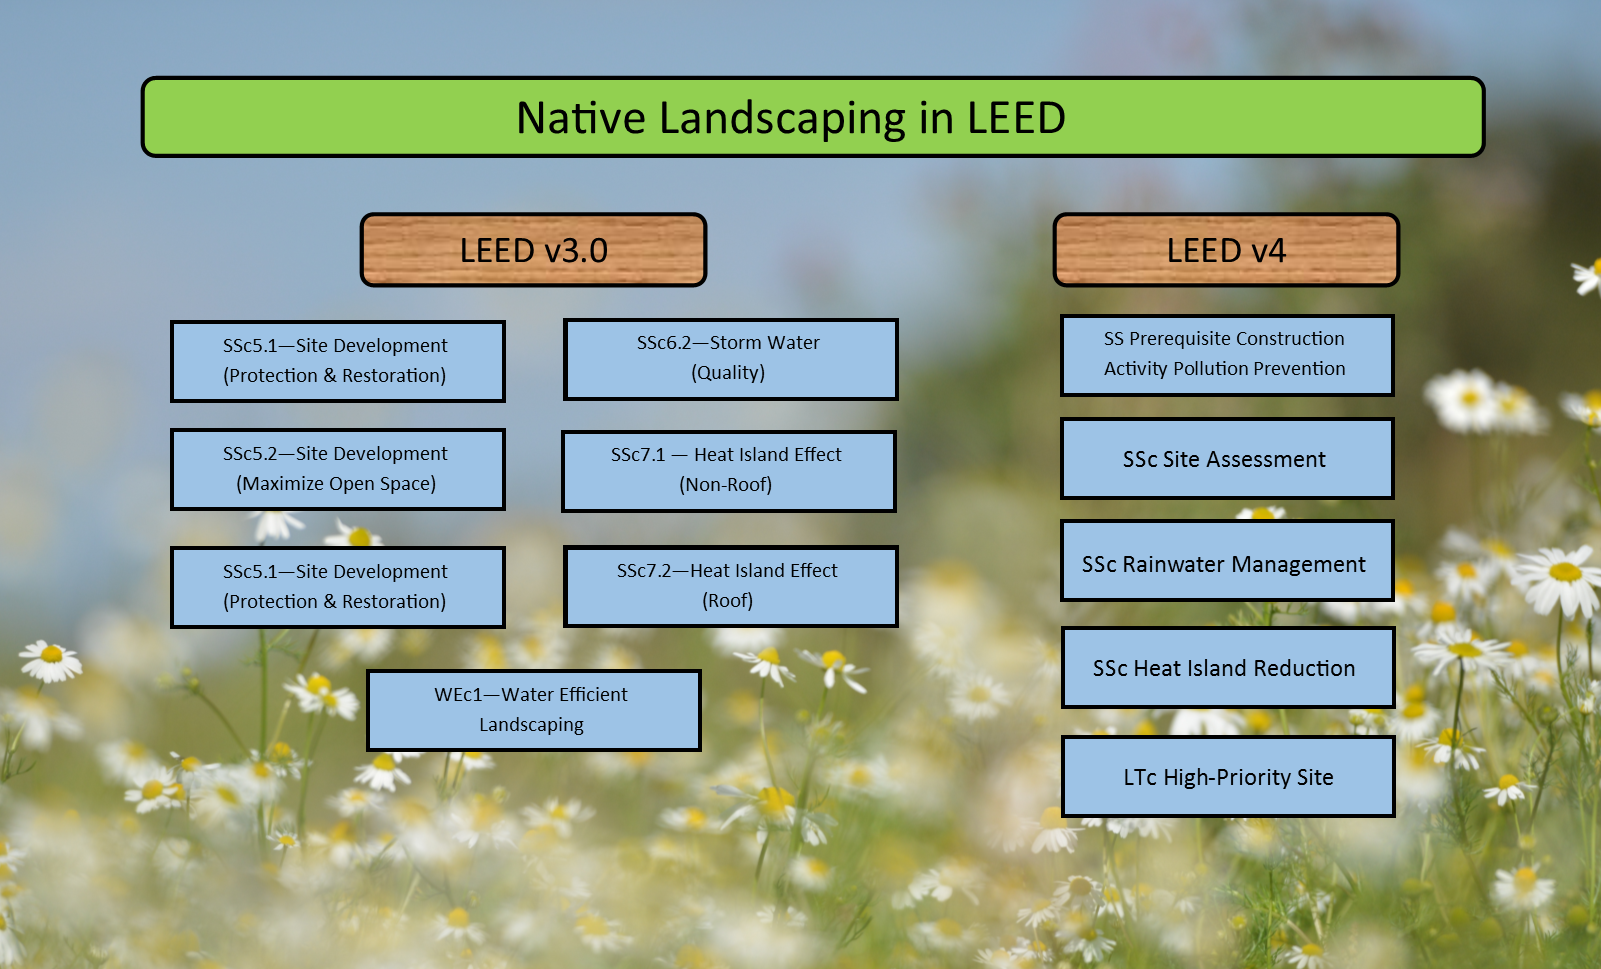 Native Landscaping LEED chart